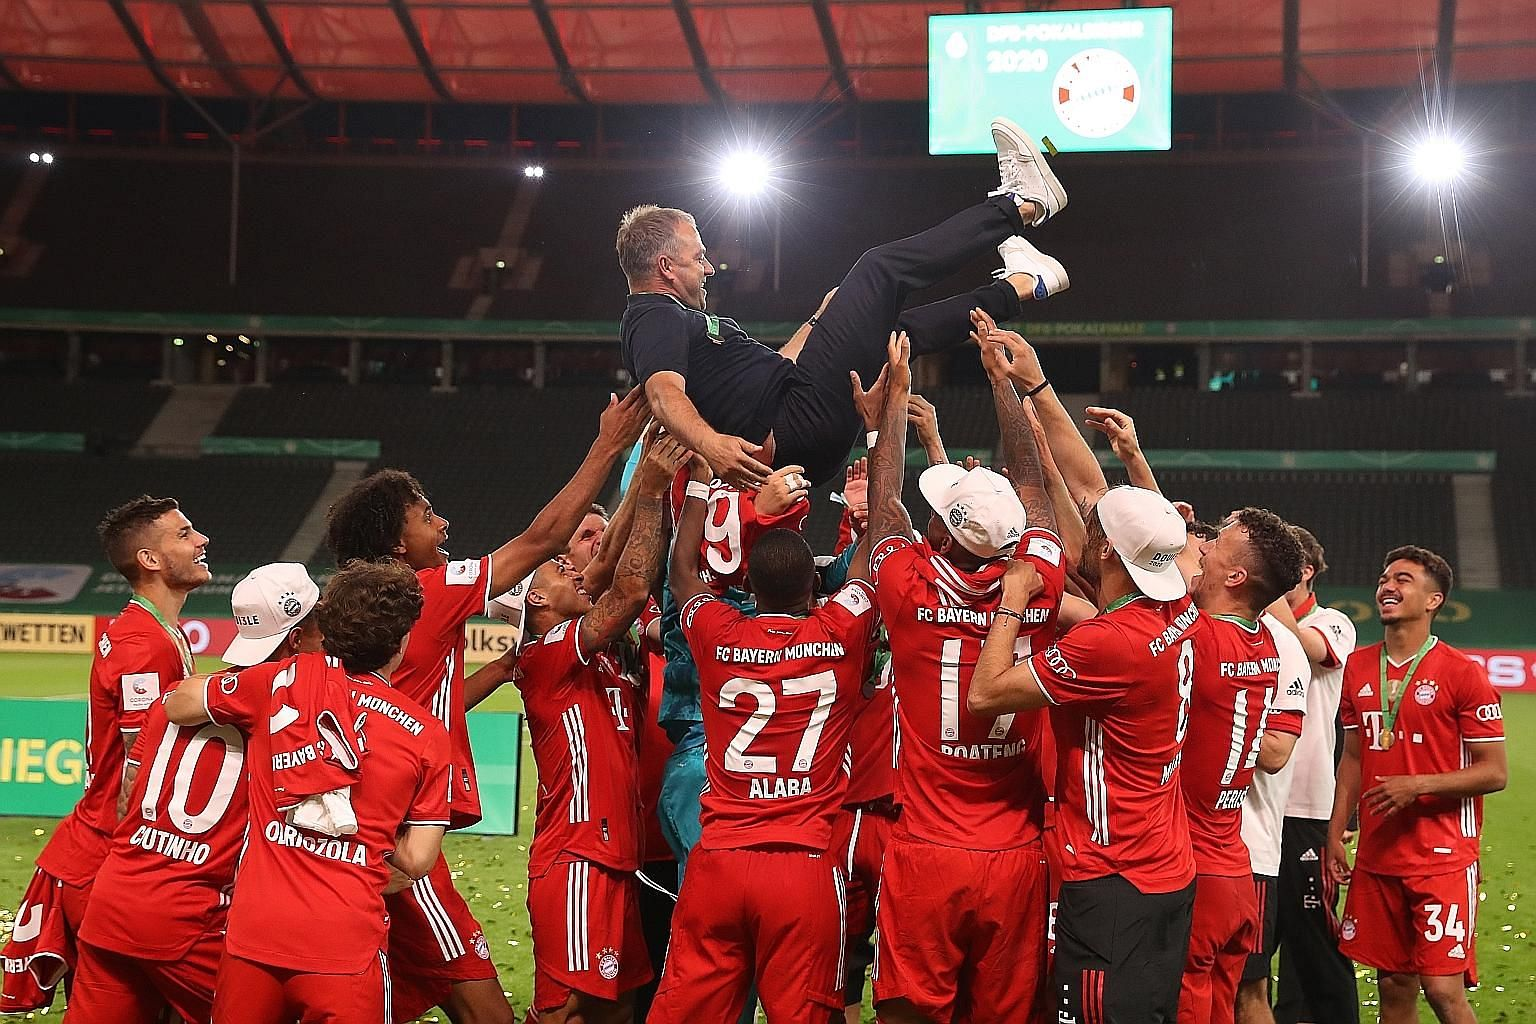 Bayern Munich coach Hansi Flick is tossed in the air by his players after they won the German Cup final against Bayer Leverkusen on Saturday.